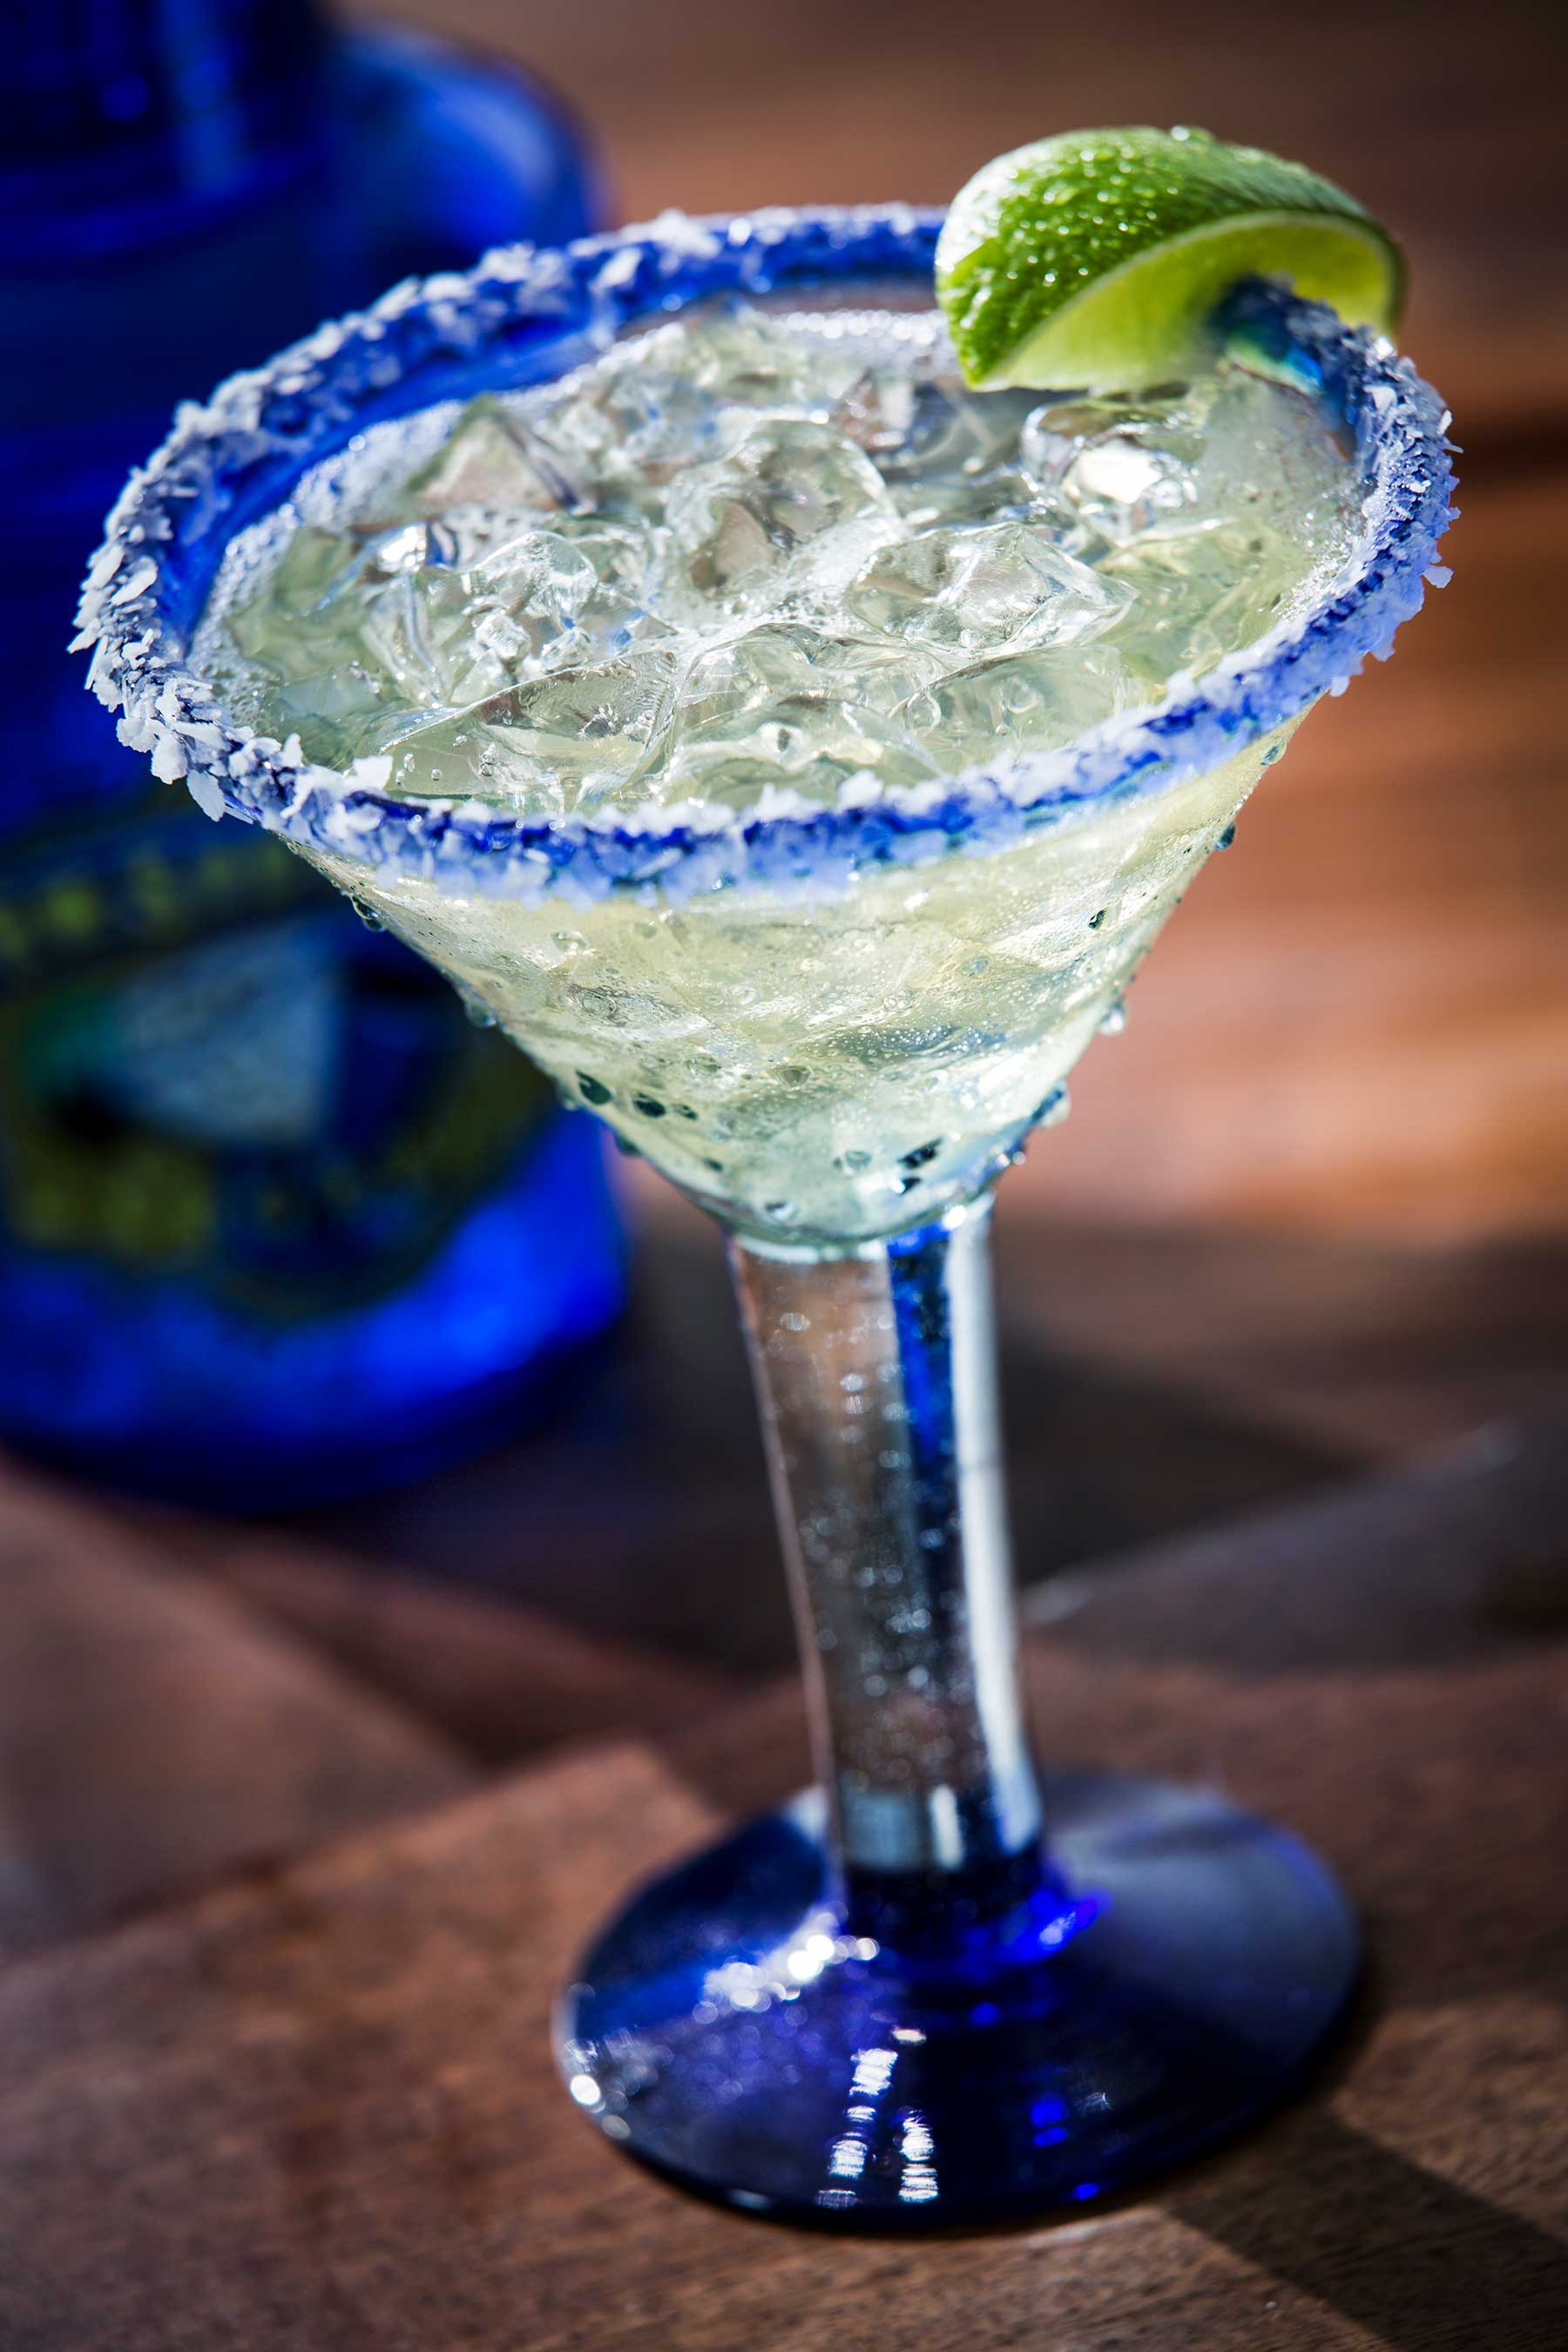 Enjoy Chili's Presidente Margarita for $3.13 on 3/13